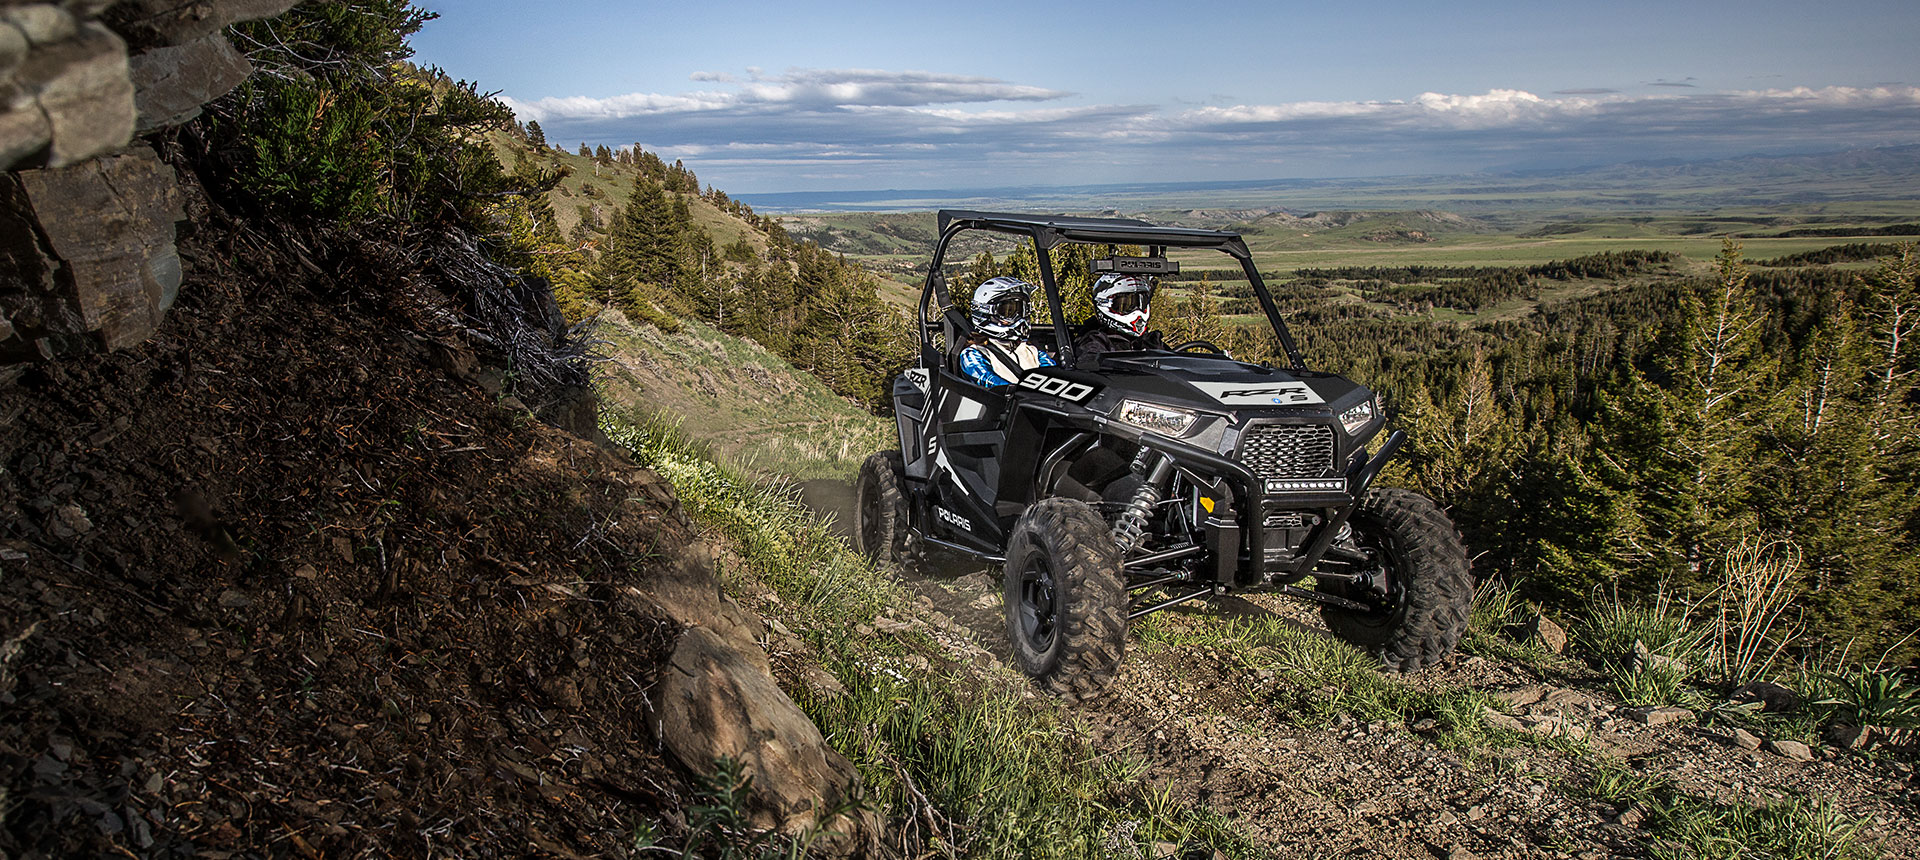 2019 Polaris RZR S 900 EPS in Elkhart, Indiana - Photo 4